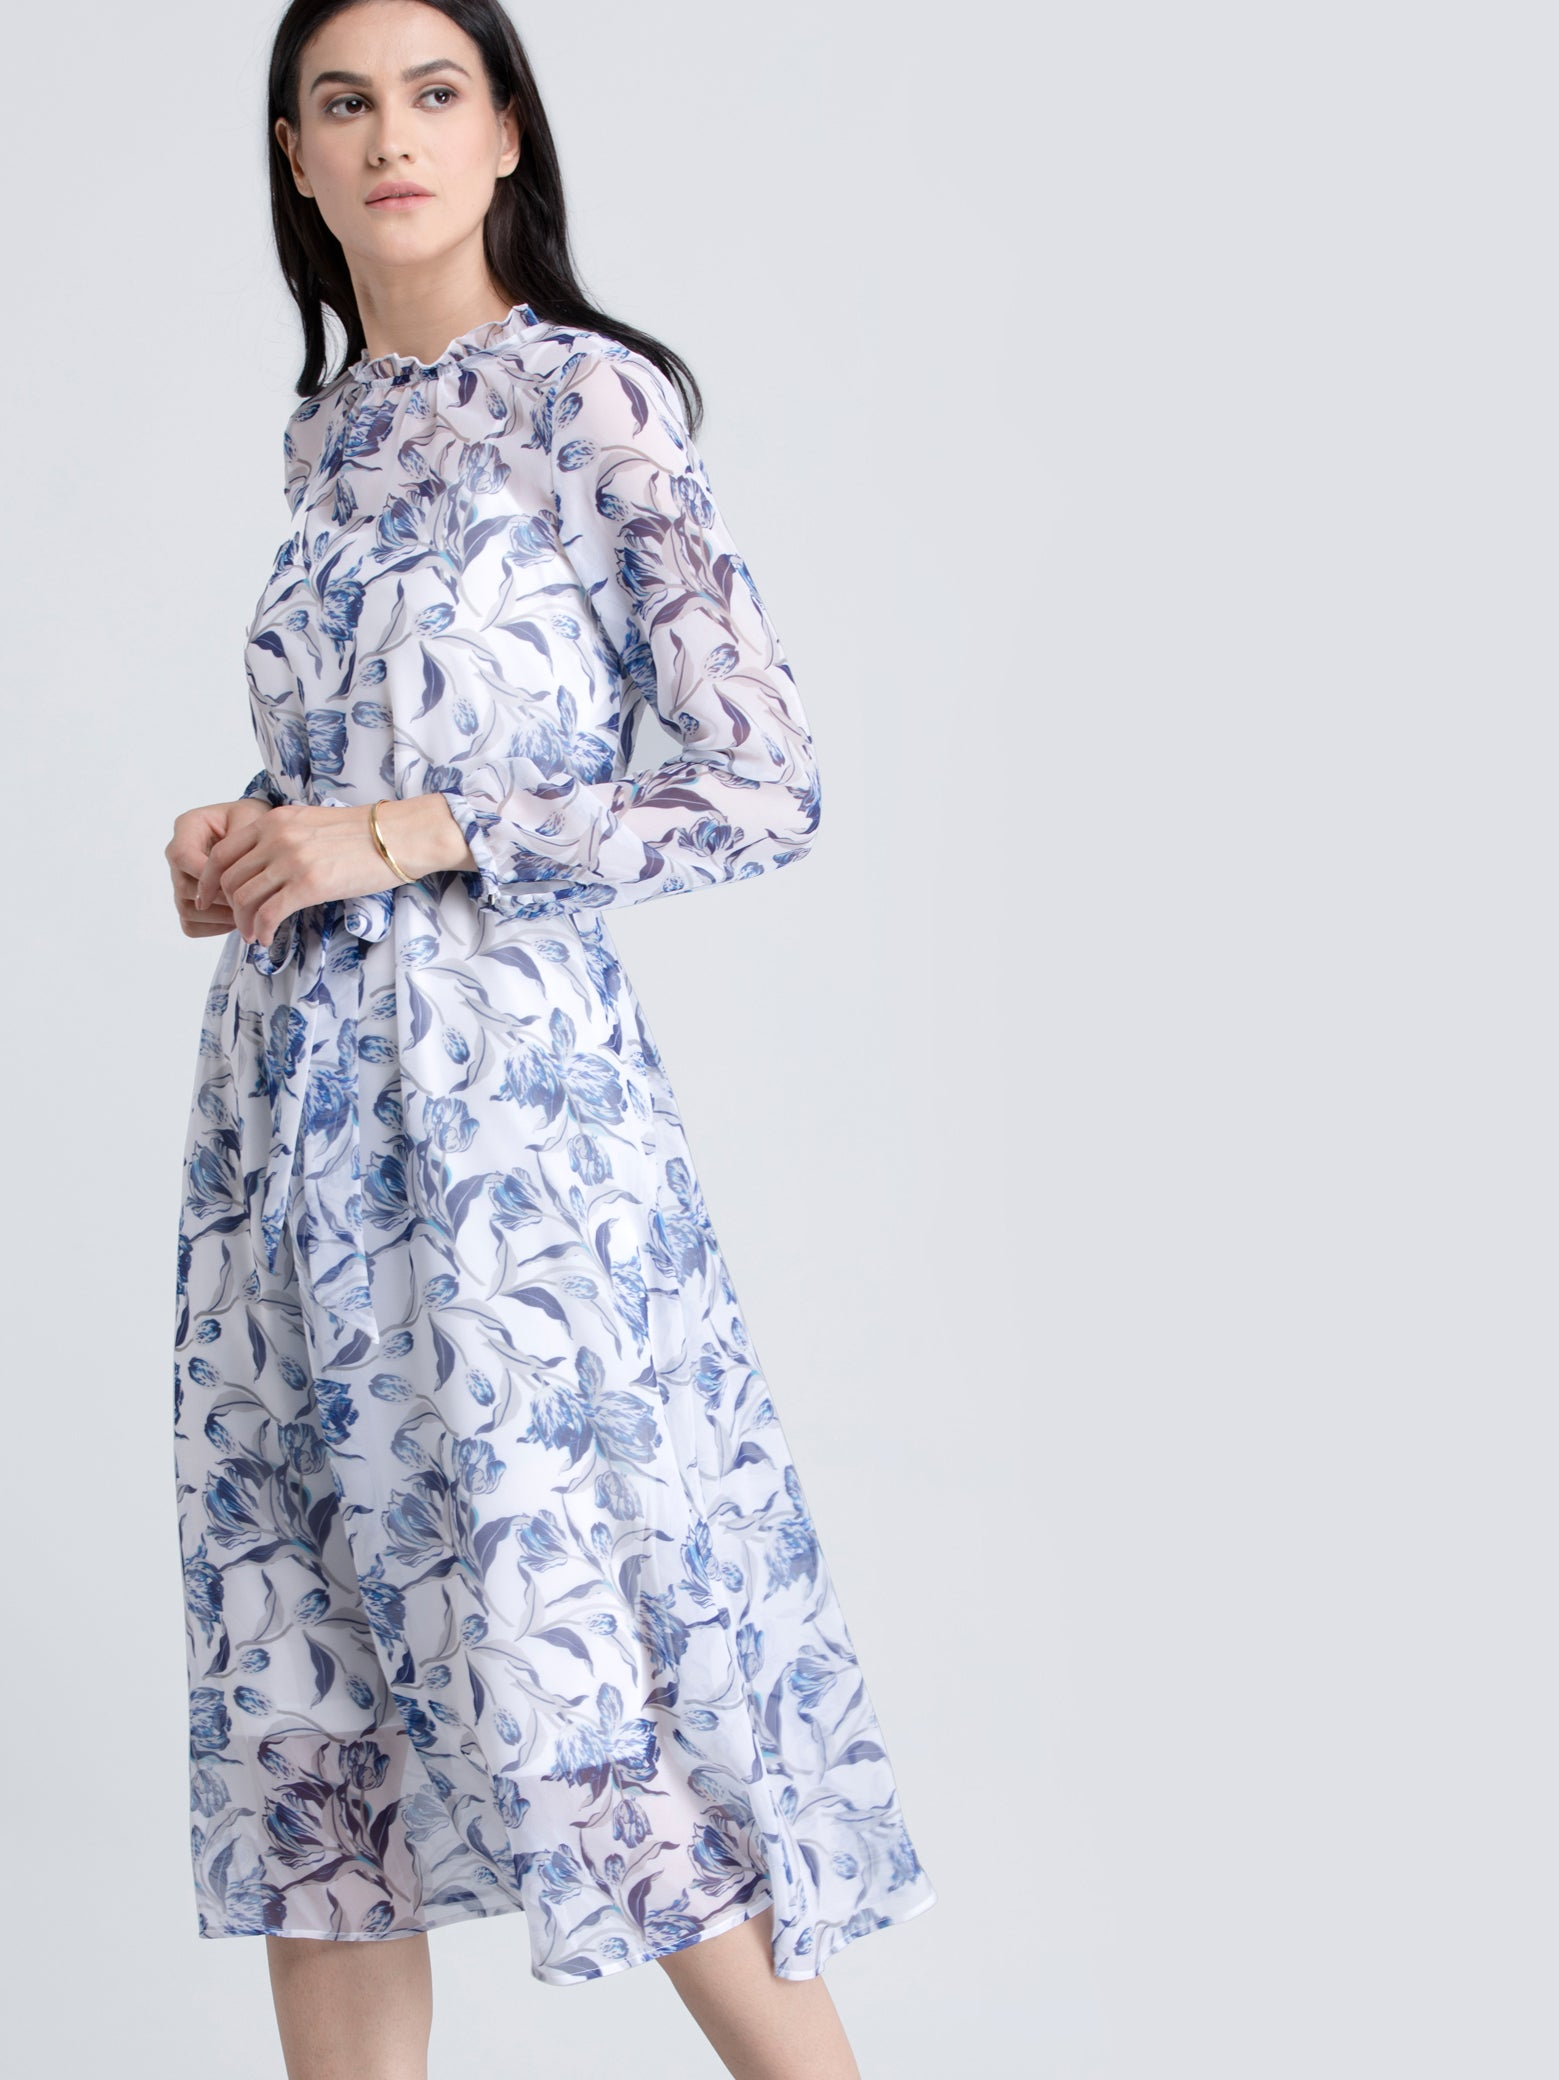 Ruffle Detail Floral Sheer Dress With Tie Up - Blue